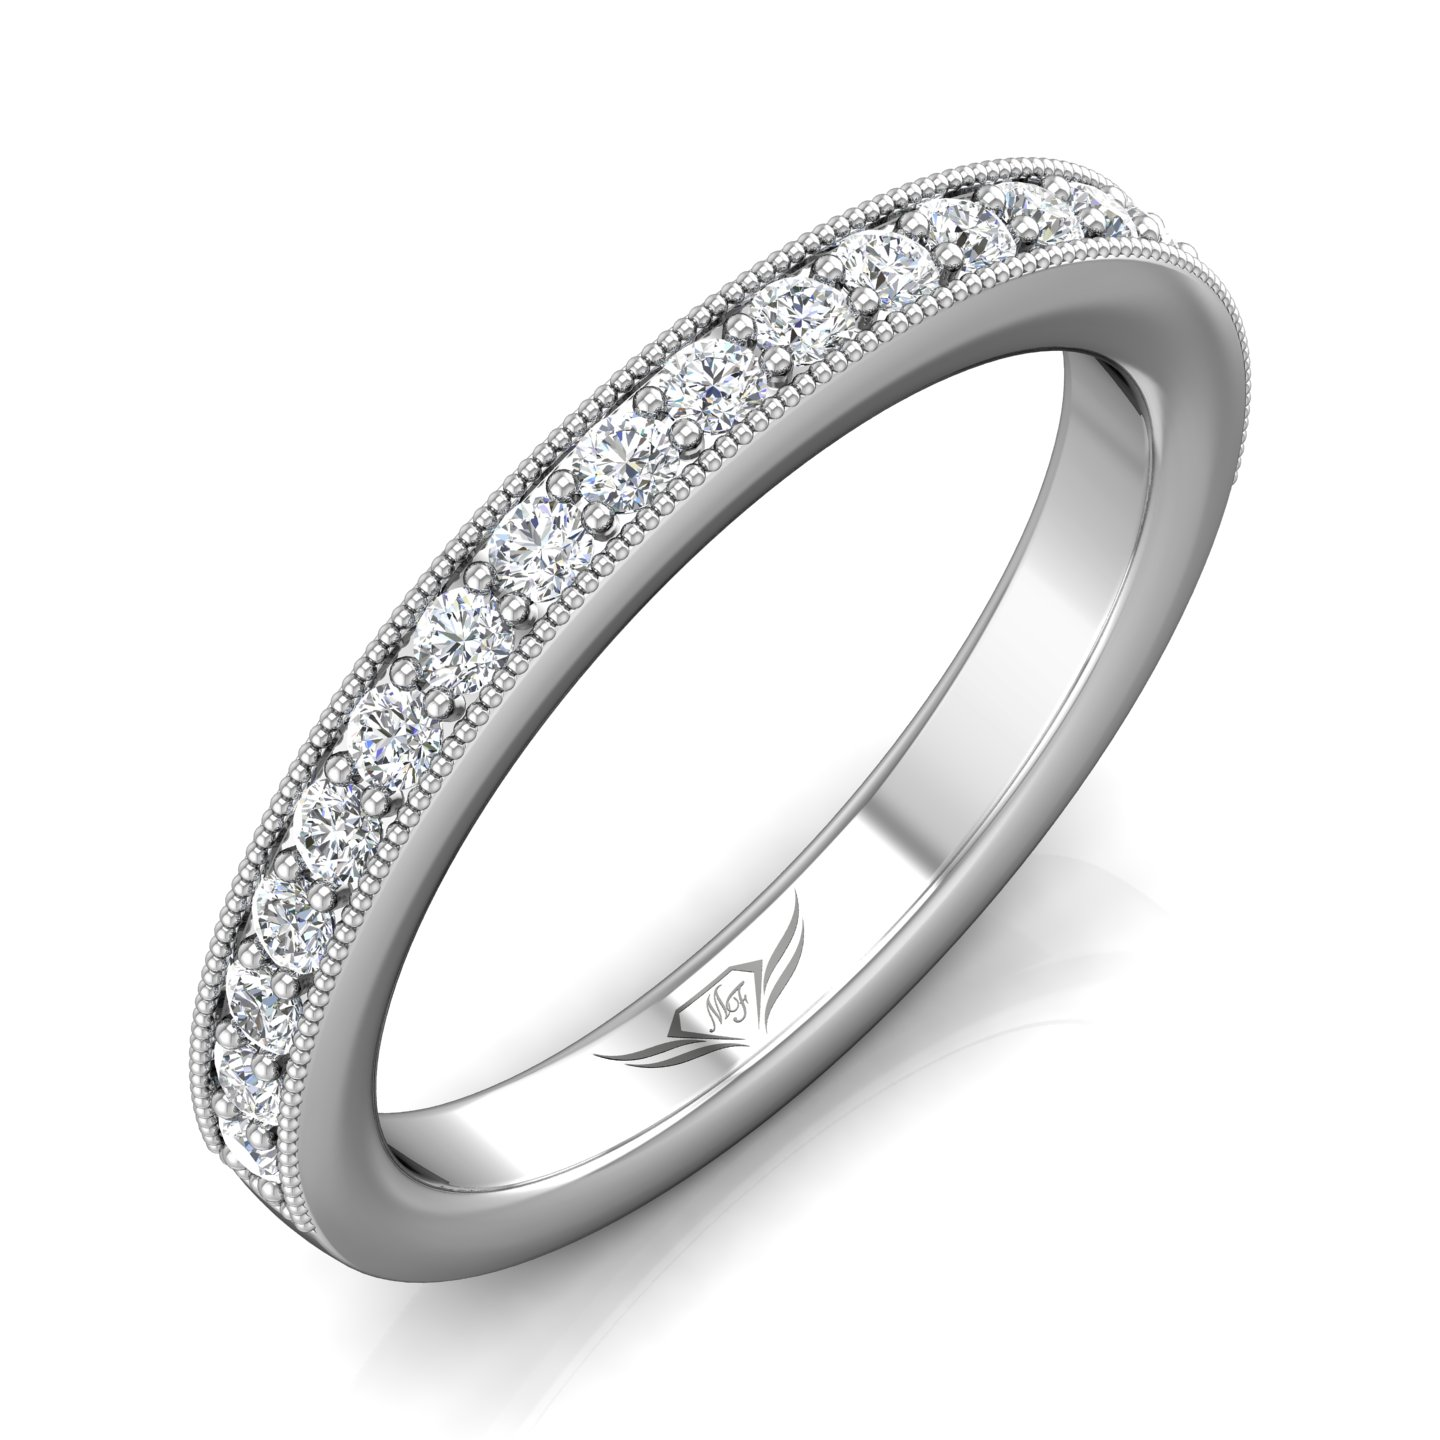 Rings - 14K White Gold FlyerFit Micropave Bead Set Wedding Band - image #5